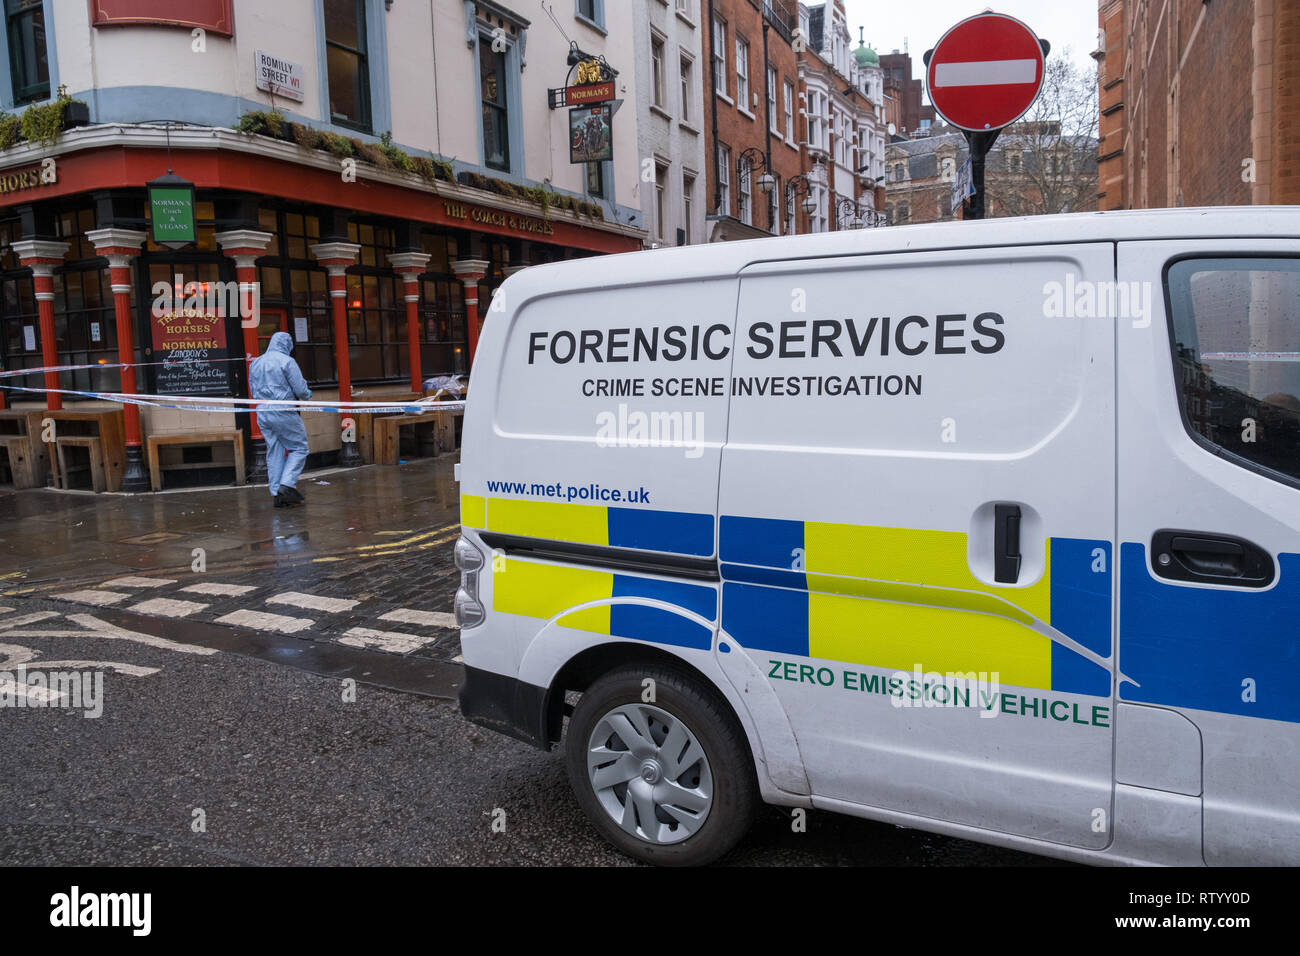 Soho, London, UK - March 3, 2019: A forensic services van  at the crime scene outside in Romilly Street in Soho. Credit: michelmond/Alamy Live News - Stock Image